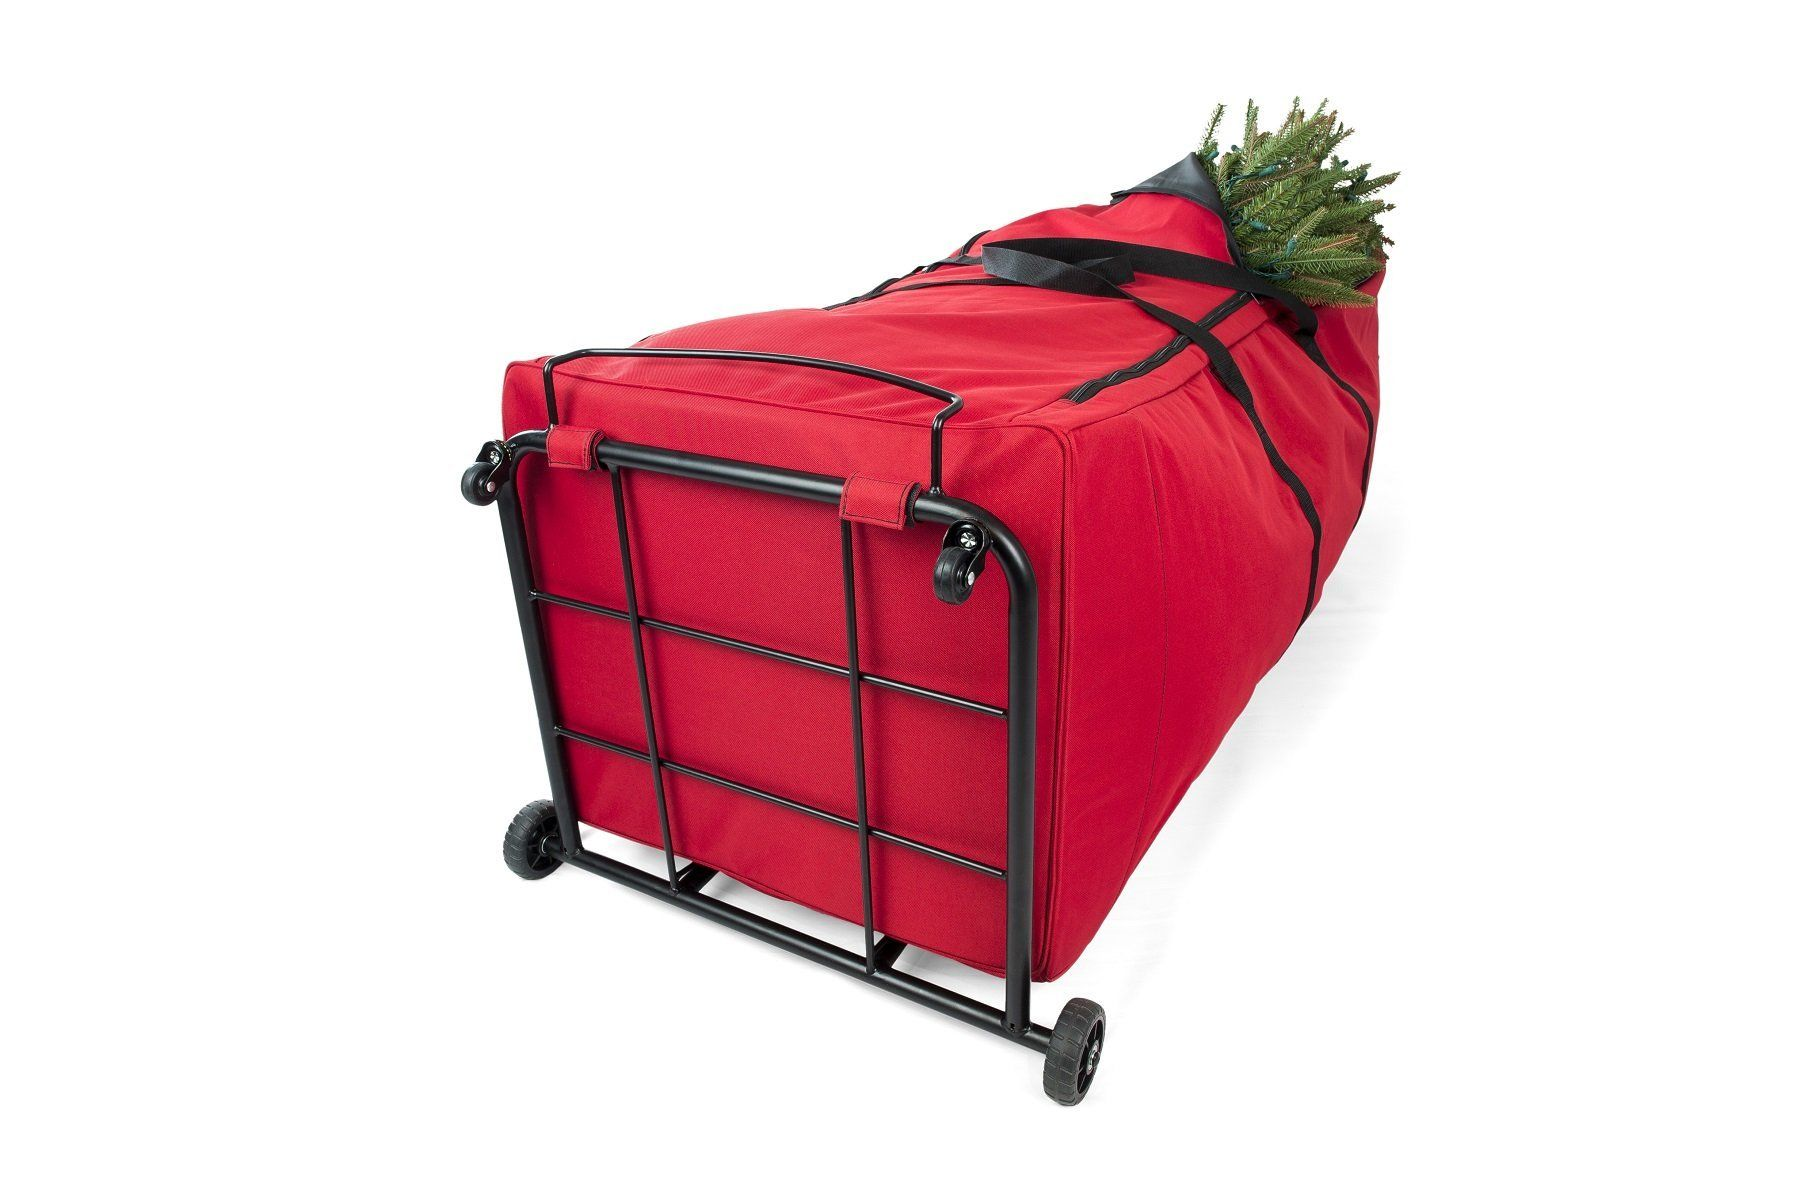 Santas Bags Upright 9 Ft Tree Storage Duffel Bag With